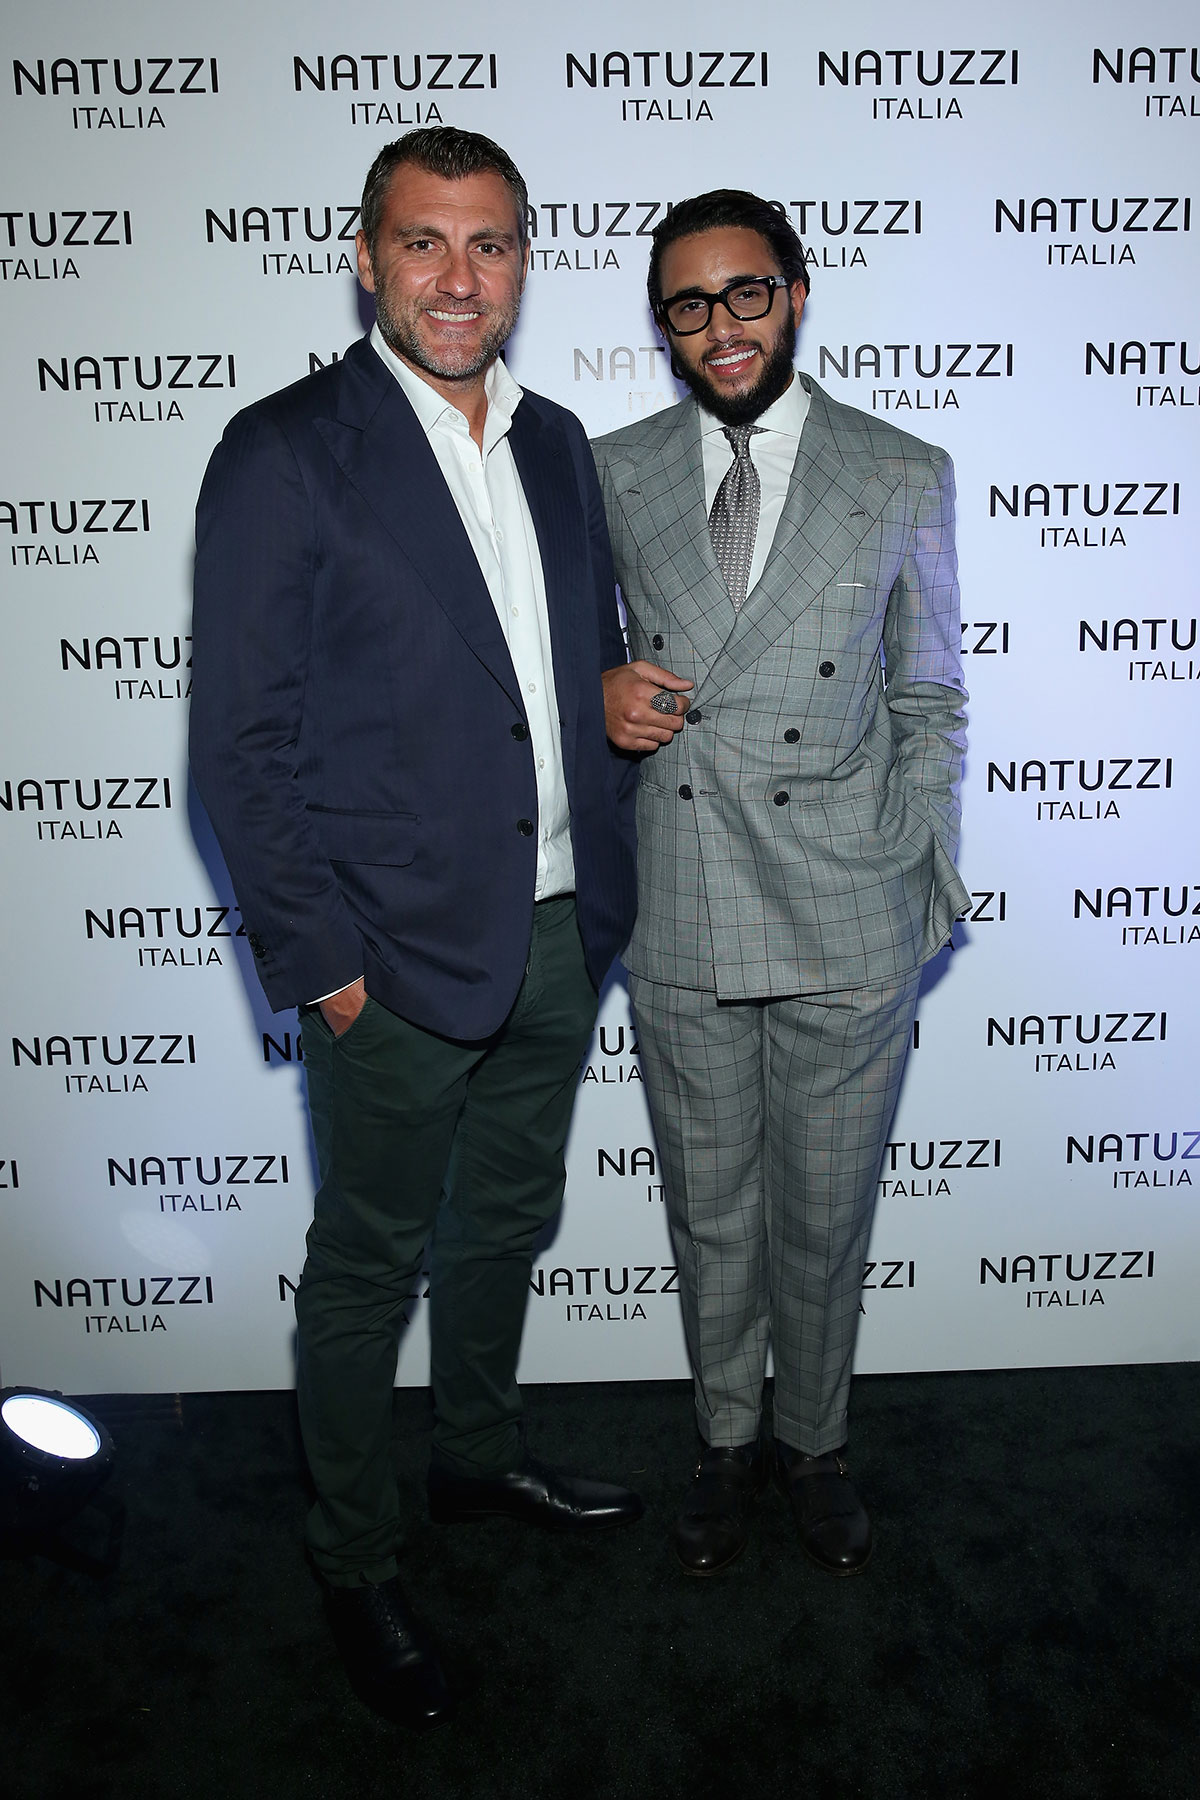 NATUZZI_Miami_CHRISTIAN_VIERI_PJ_NATUZZI_Photo-by-Monica-Schipper_Getty-Images.jpg